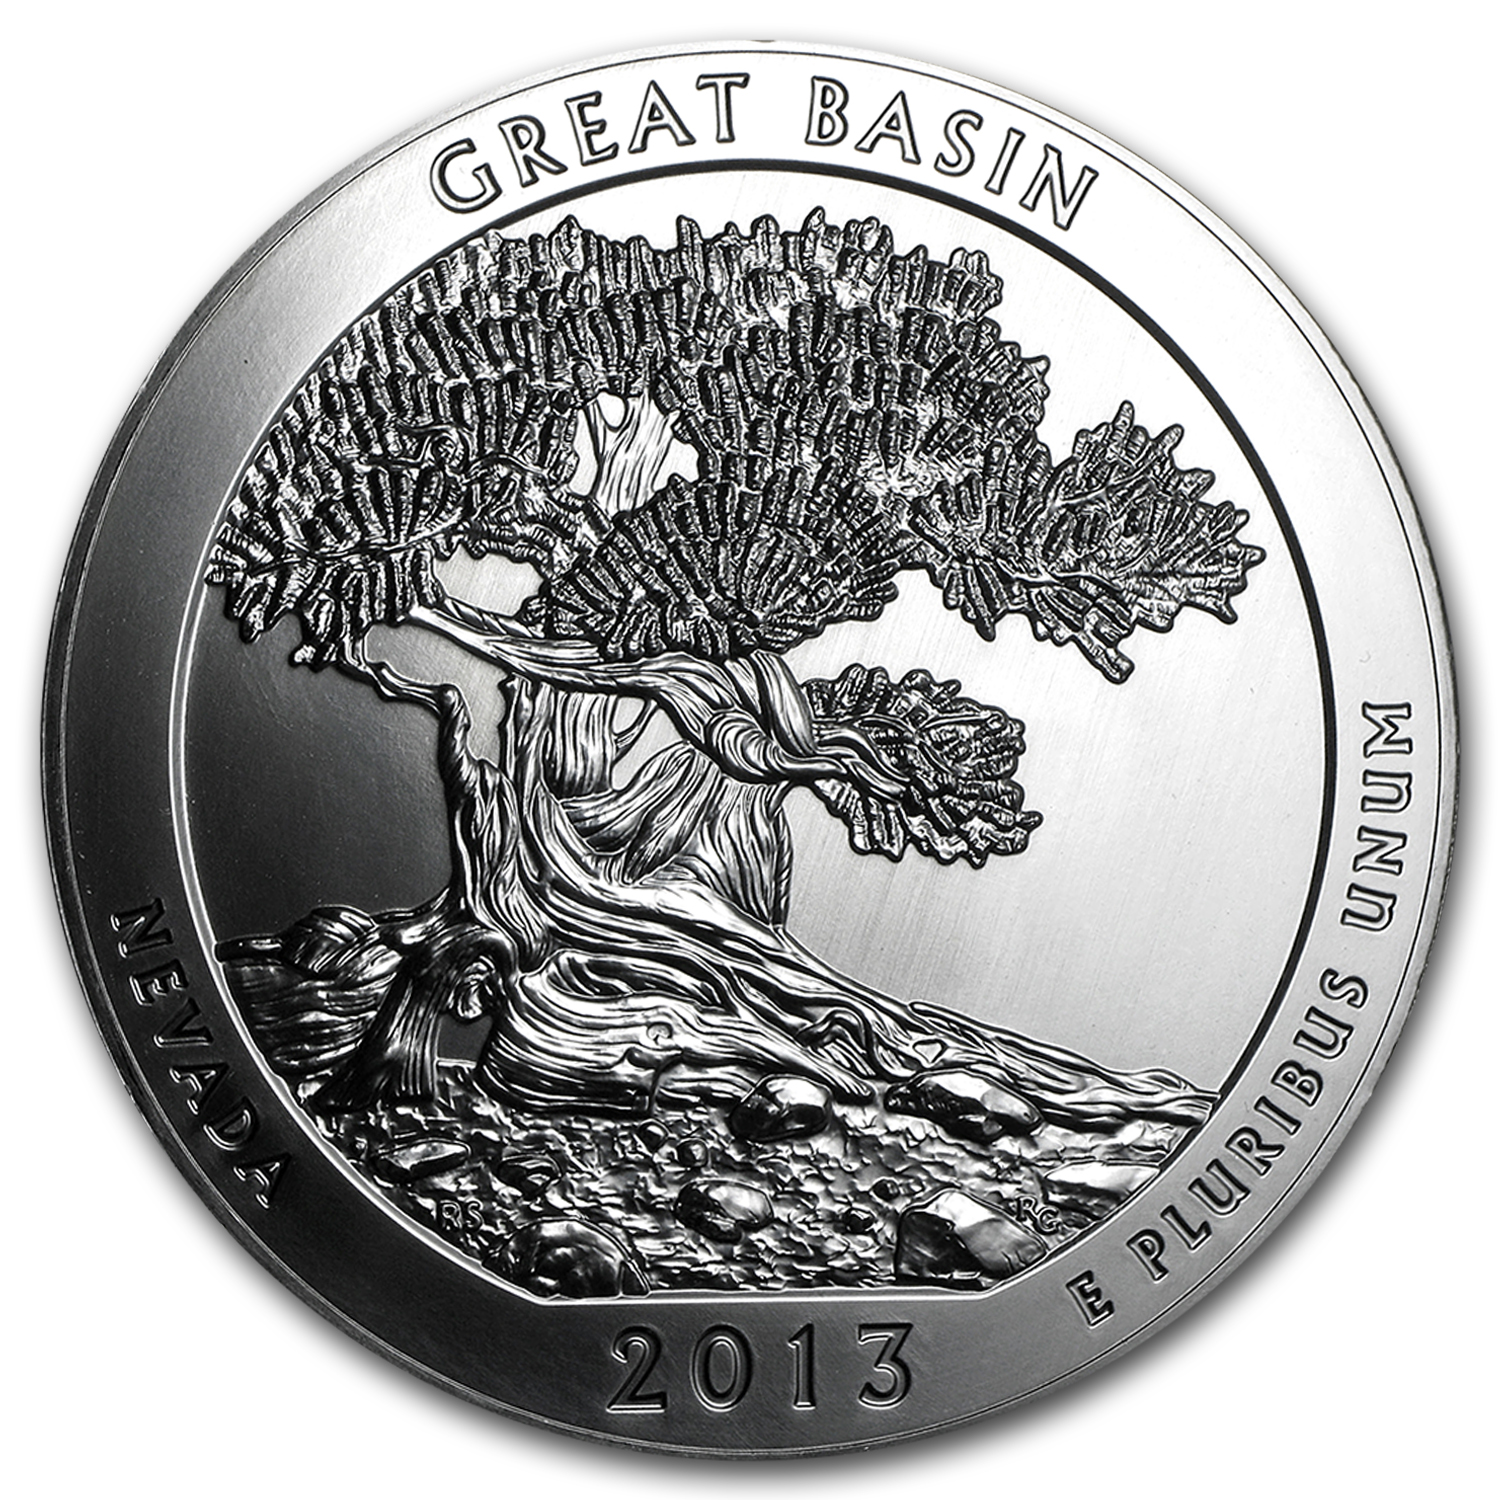 2013 5 oz Silver ATB Great Basin (10-Coin MintDirect® Tube)